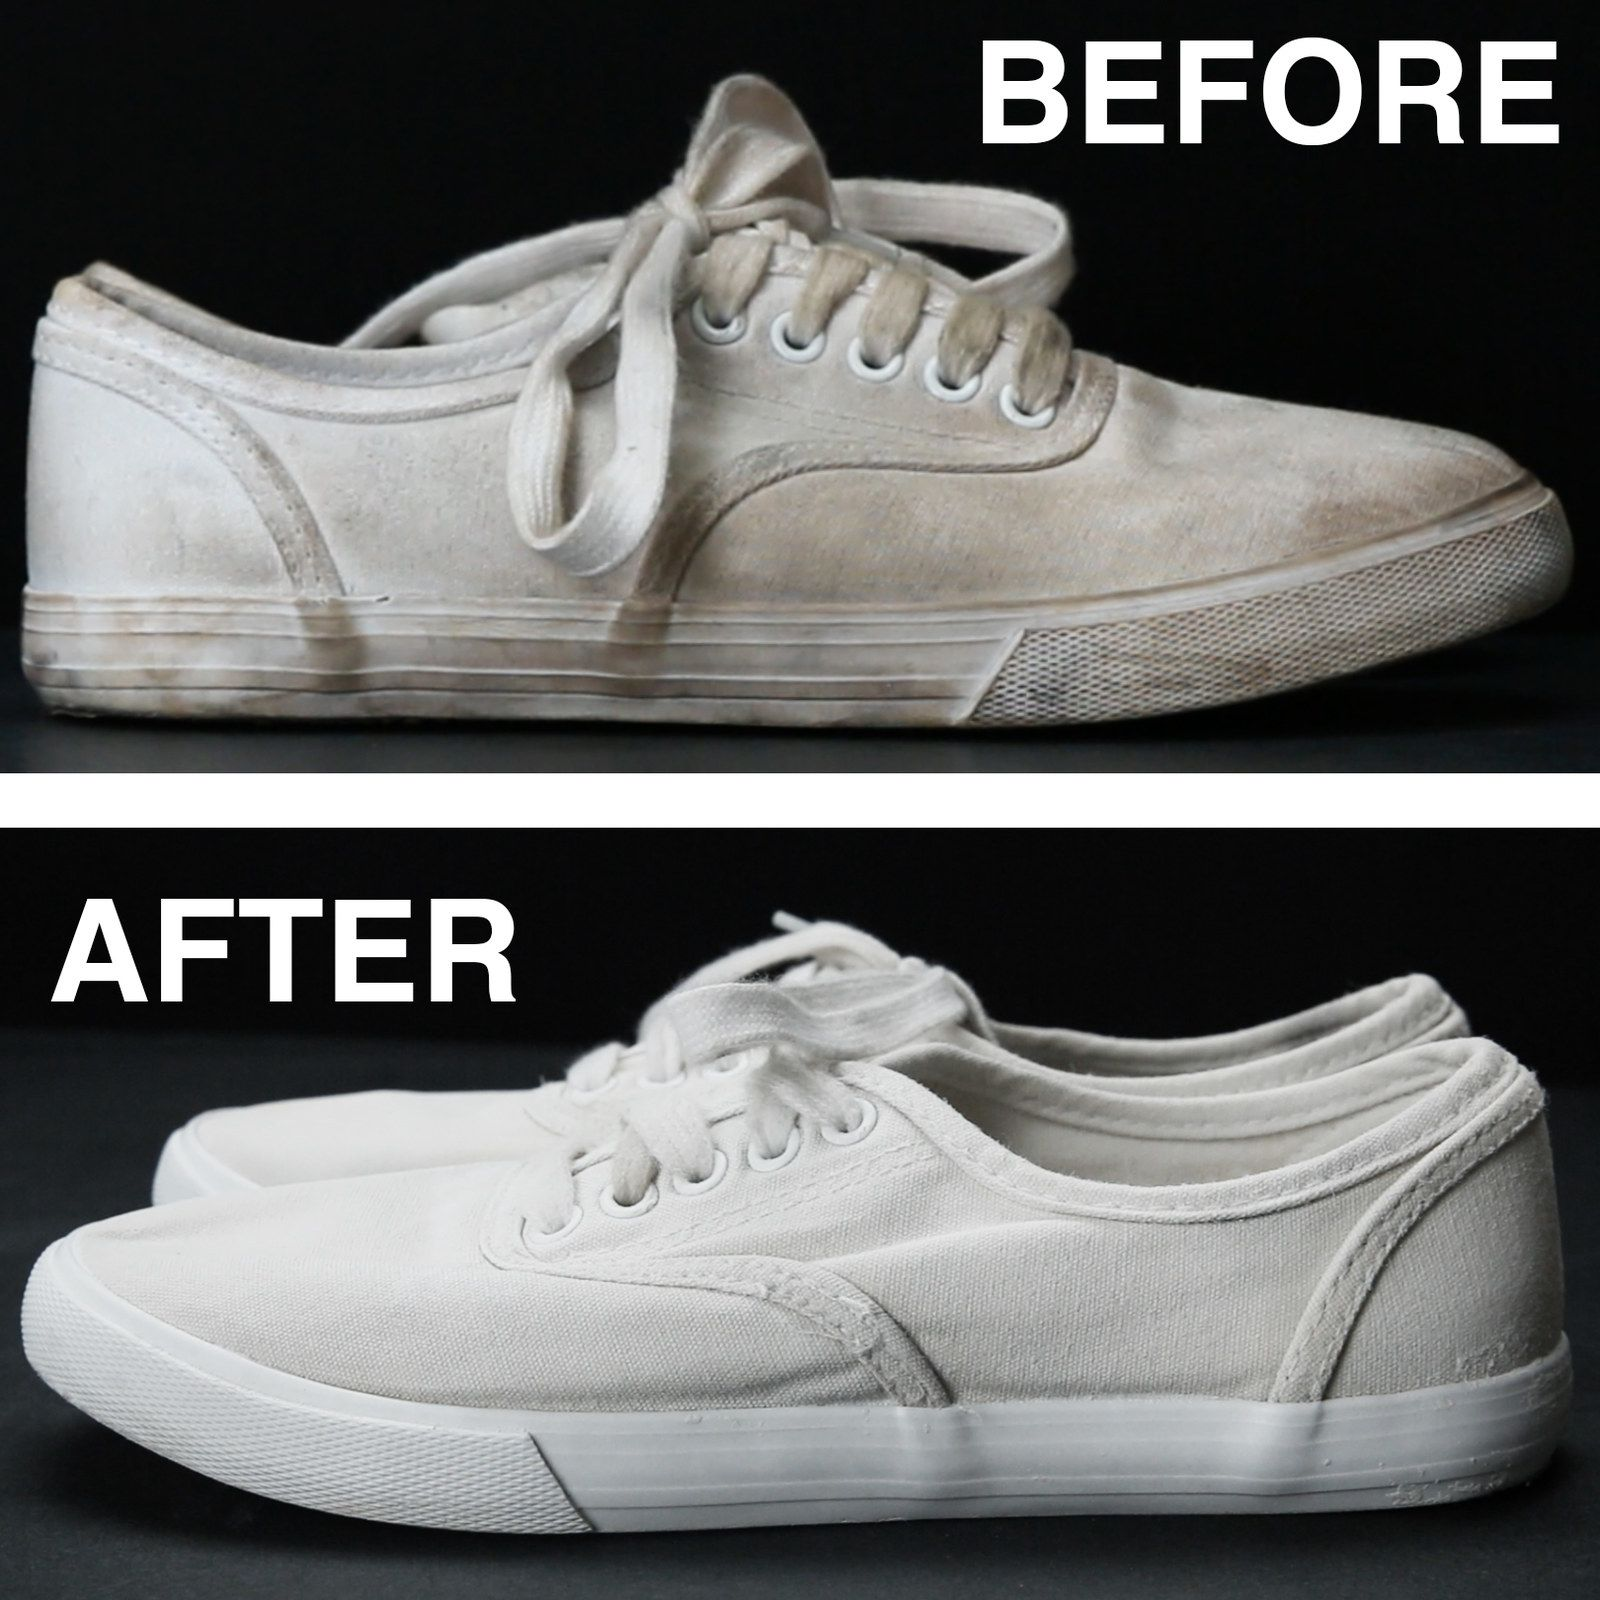 490a479ca1867c Finally There s An Easy Way To Clean Off Your White Shoes To Make Them Look  Brand New Again